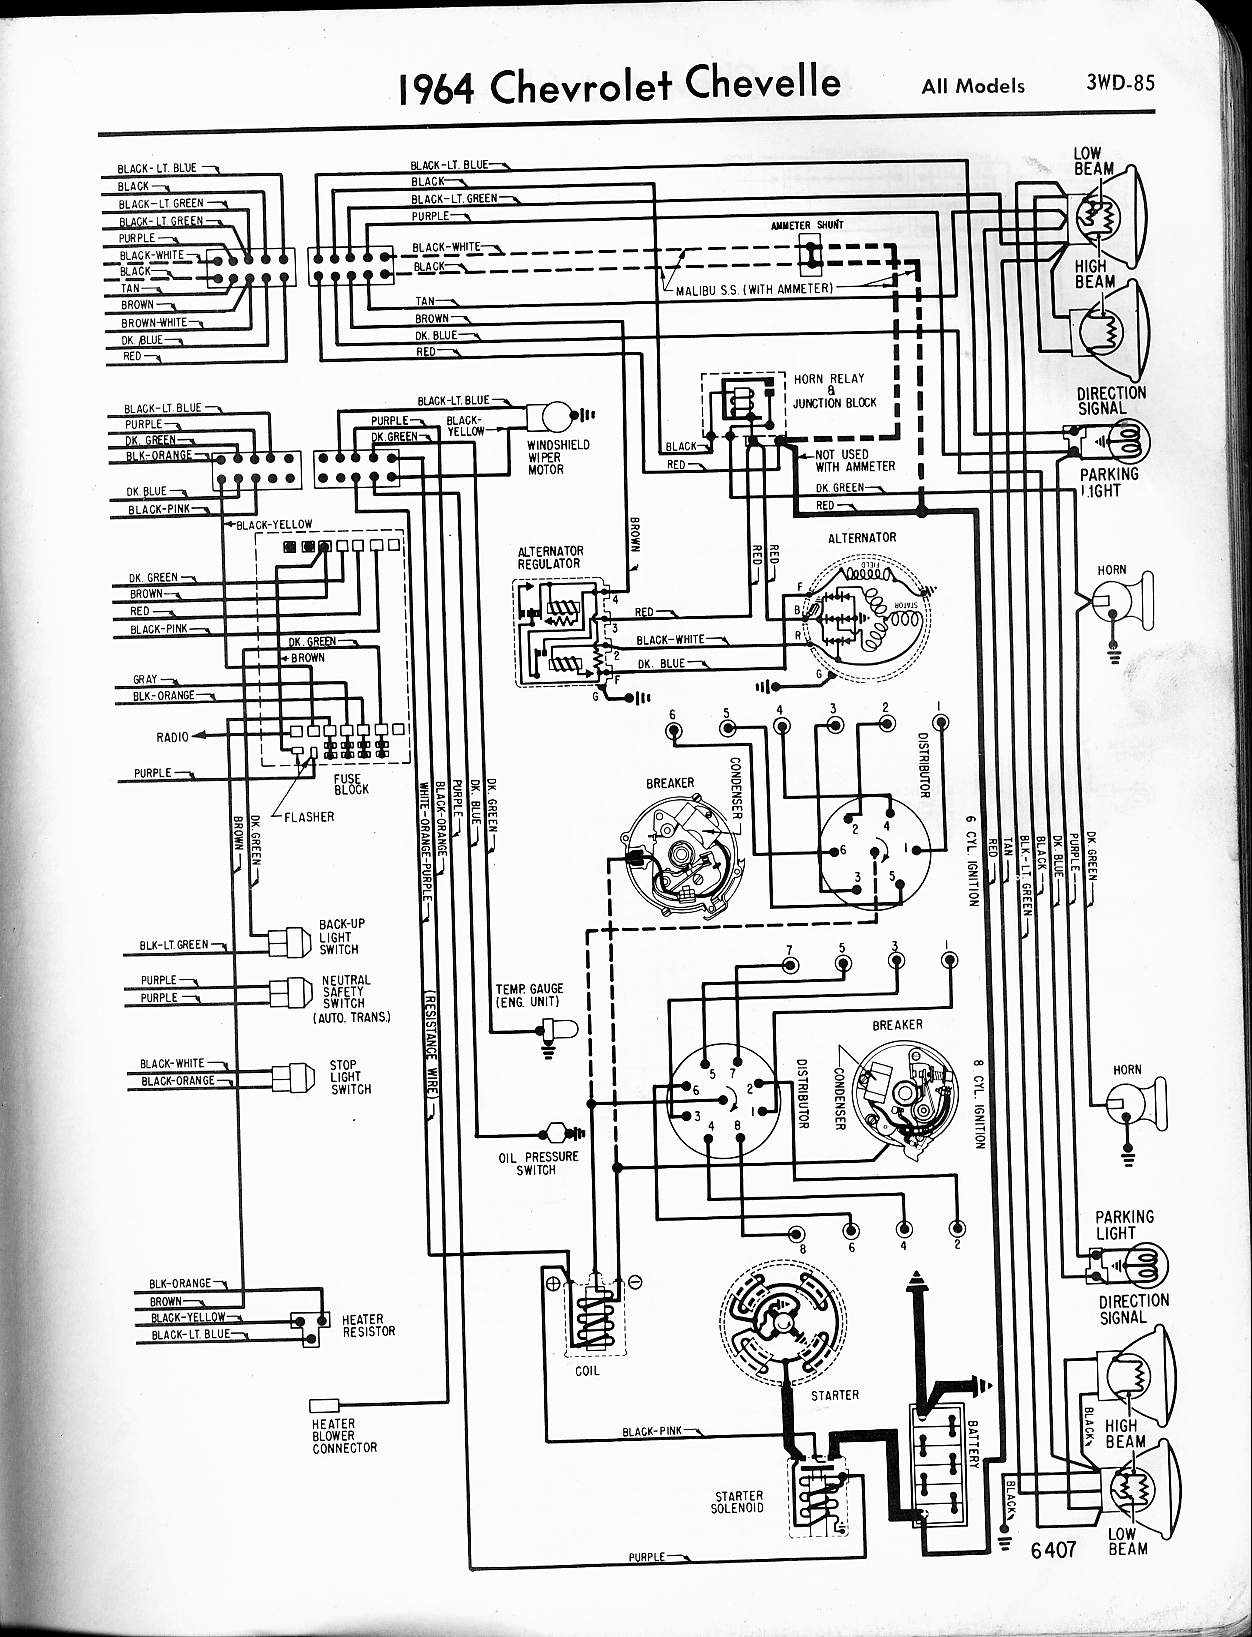 1966 Buick Skylark Wiring Harness Vehicle Diagrams 1964 Chevelle Diagram Figure A B At